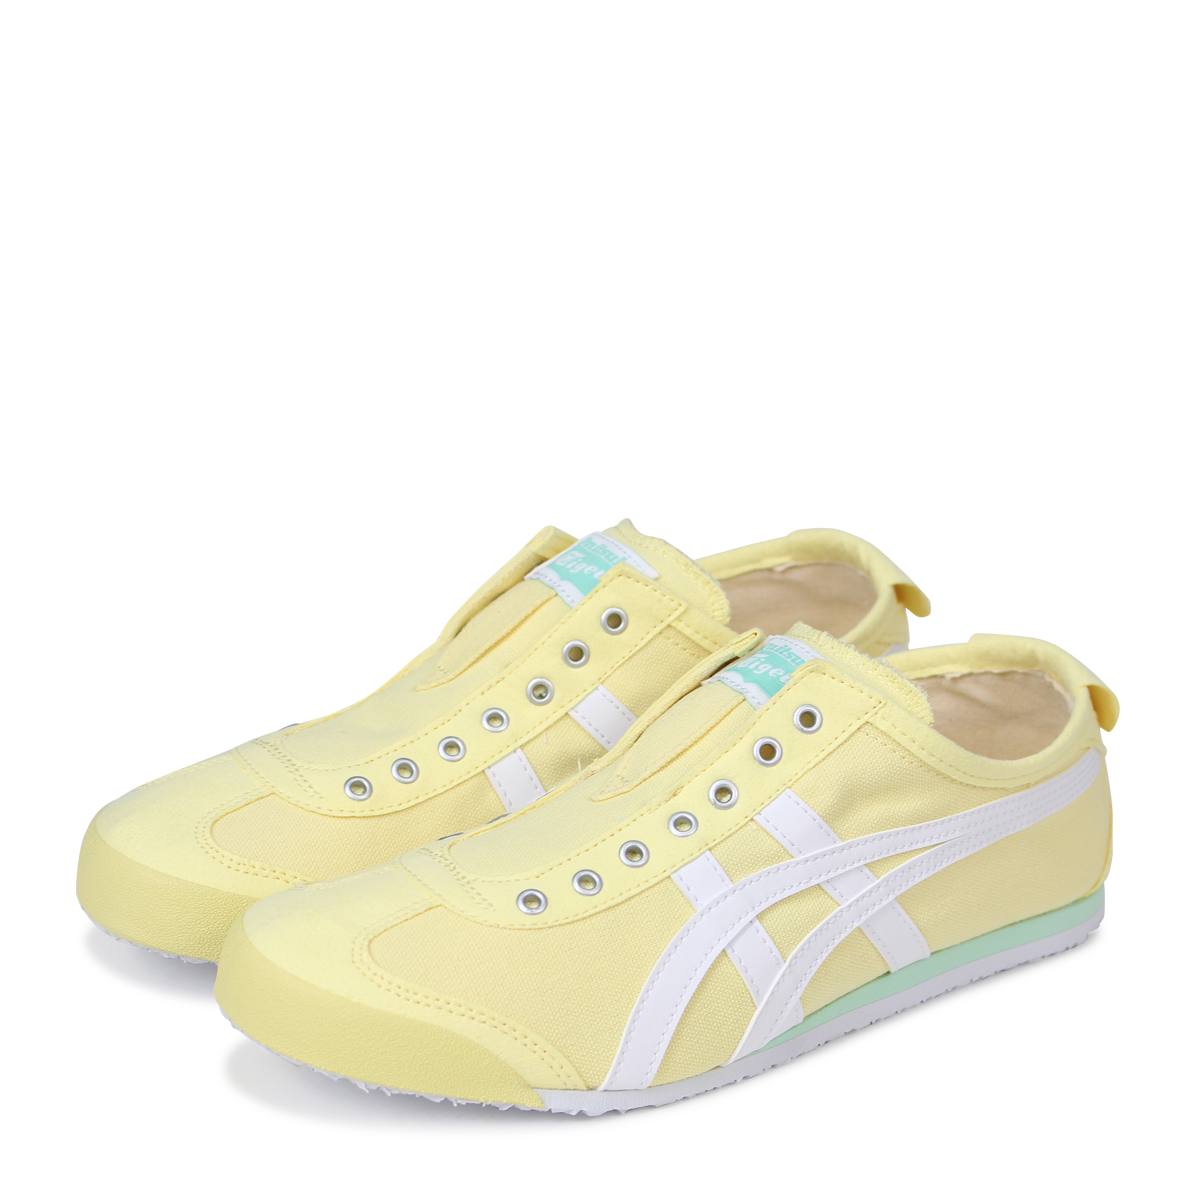 promo code 6dd48 229ef Onitsuka Tiger MEXICO 66 SLIP-ON Onitsuka tiger Mexico 66 slip-ons men gap  Dis sneakers TH3K0N-0301 yellow [184]